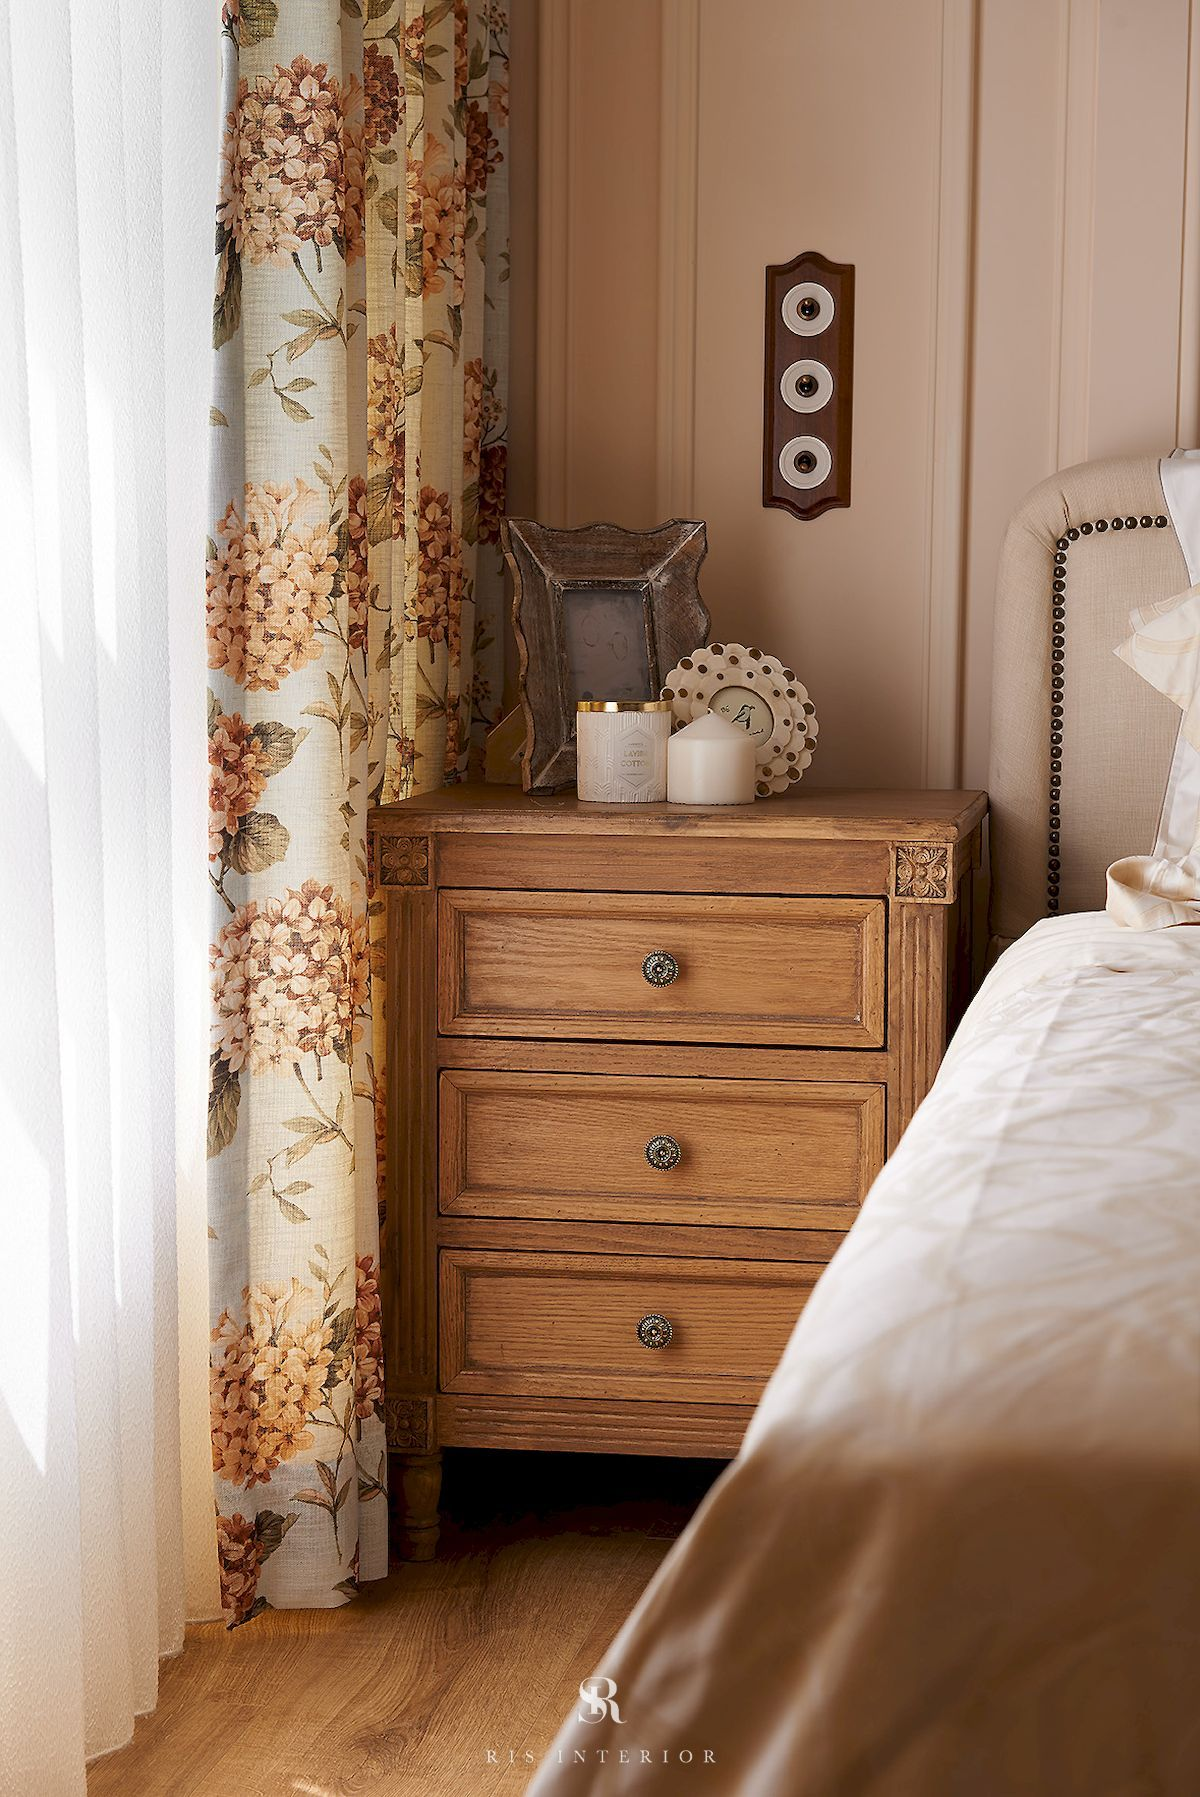 Bedroom Ideas And Inspiration. Styles: French, American, Country. Colors:  Beige